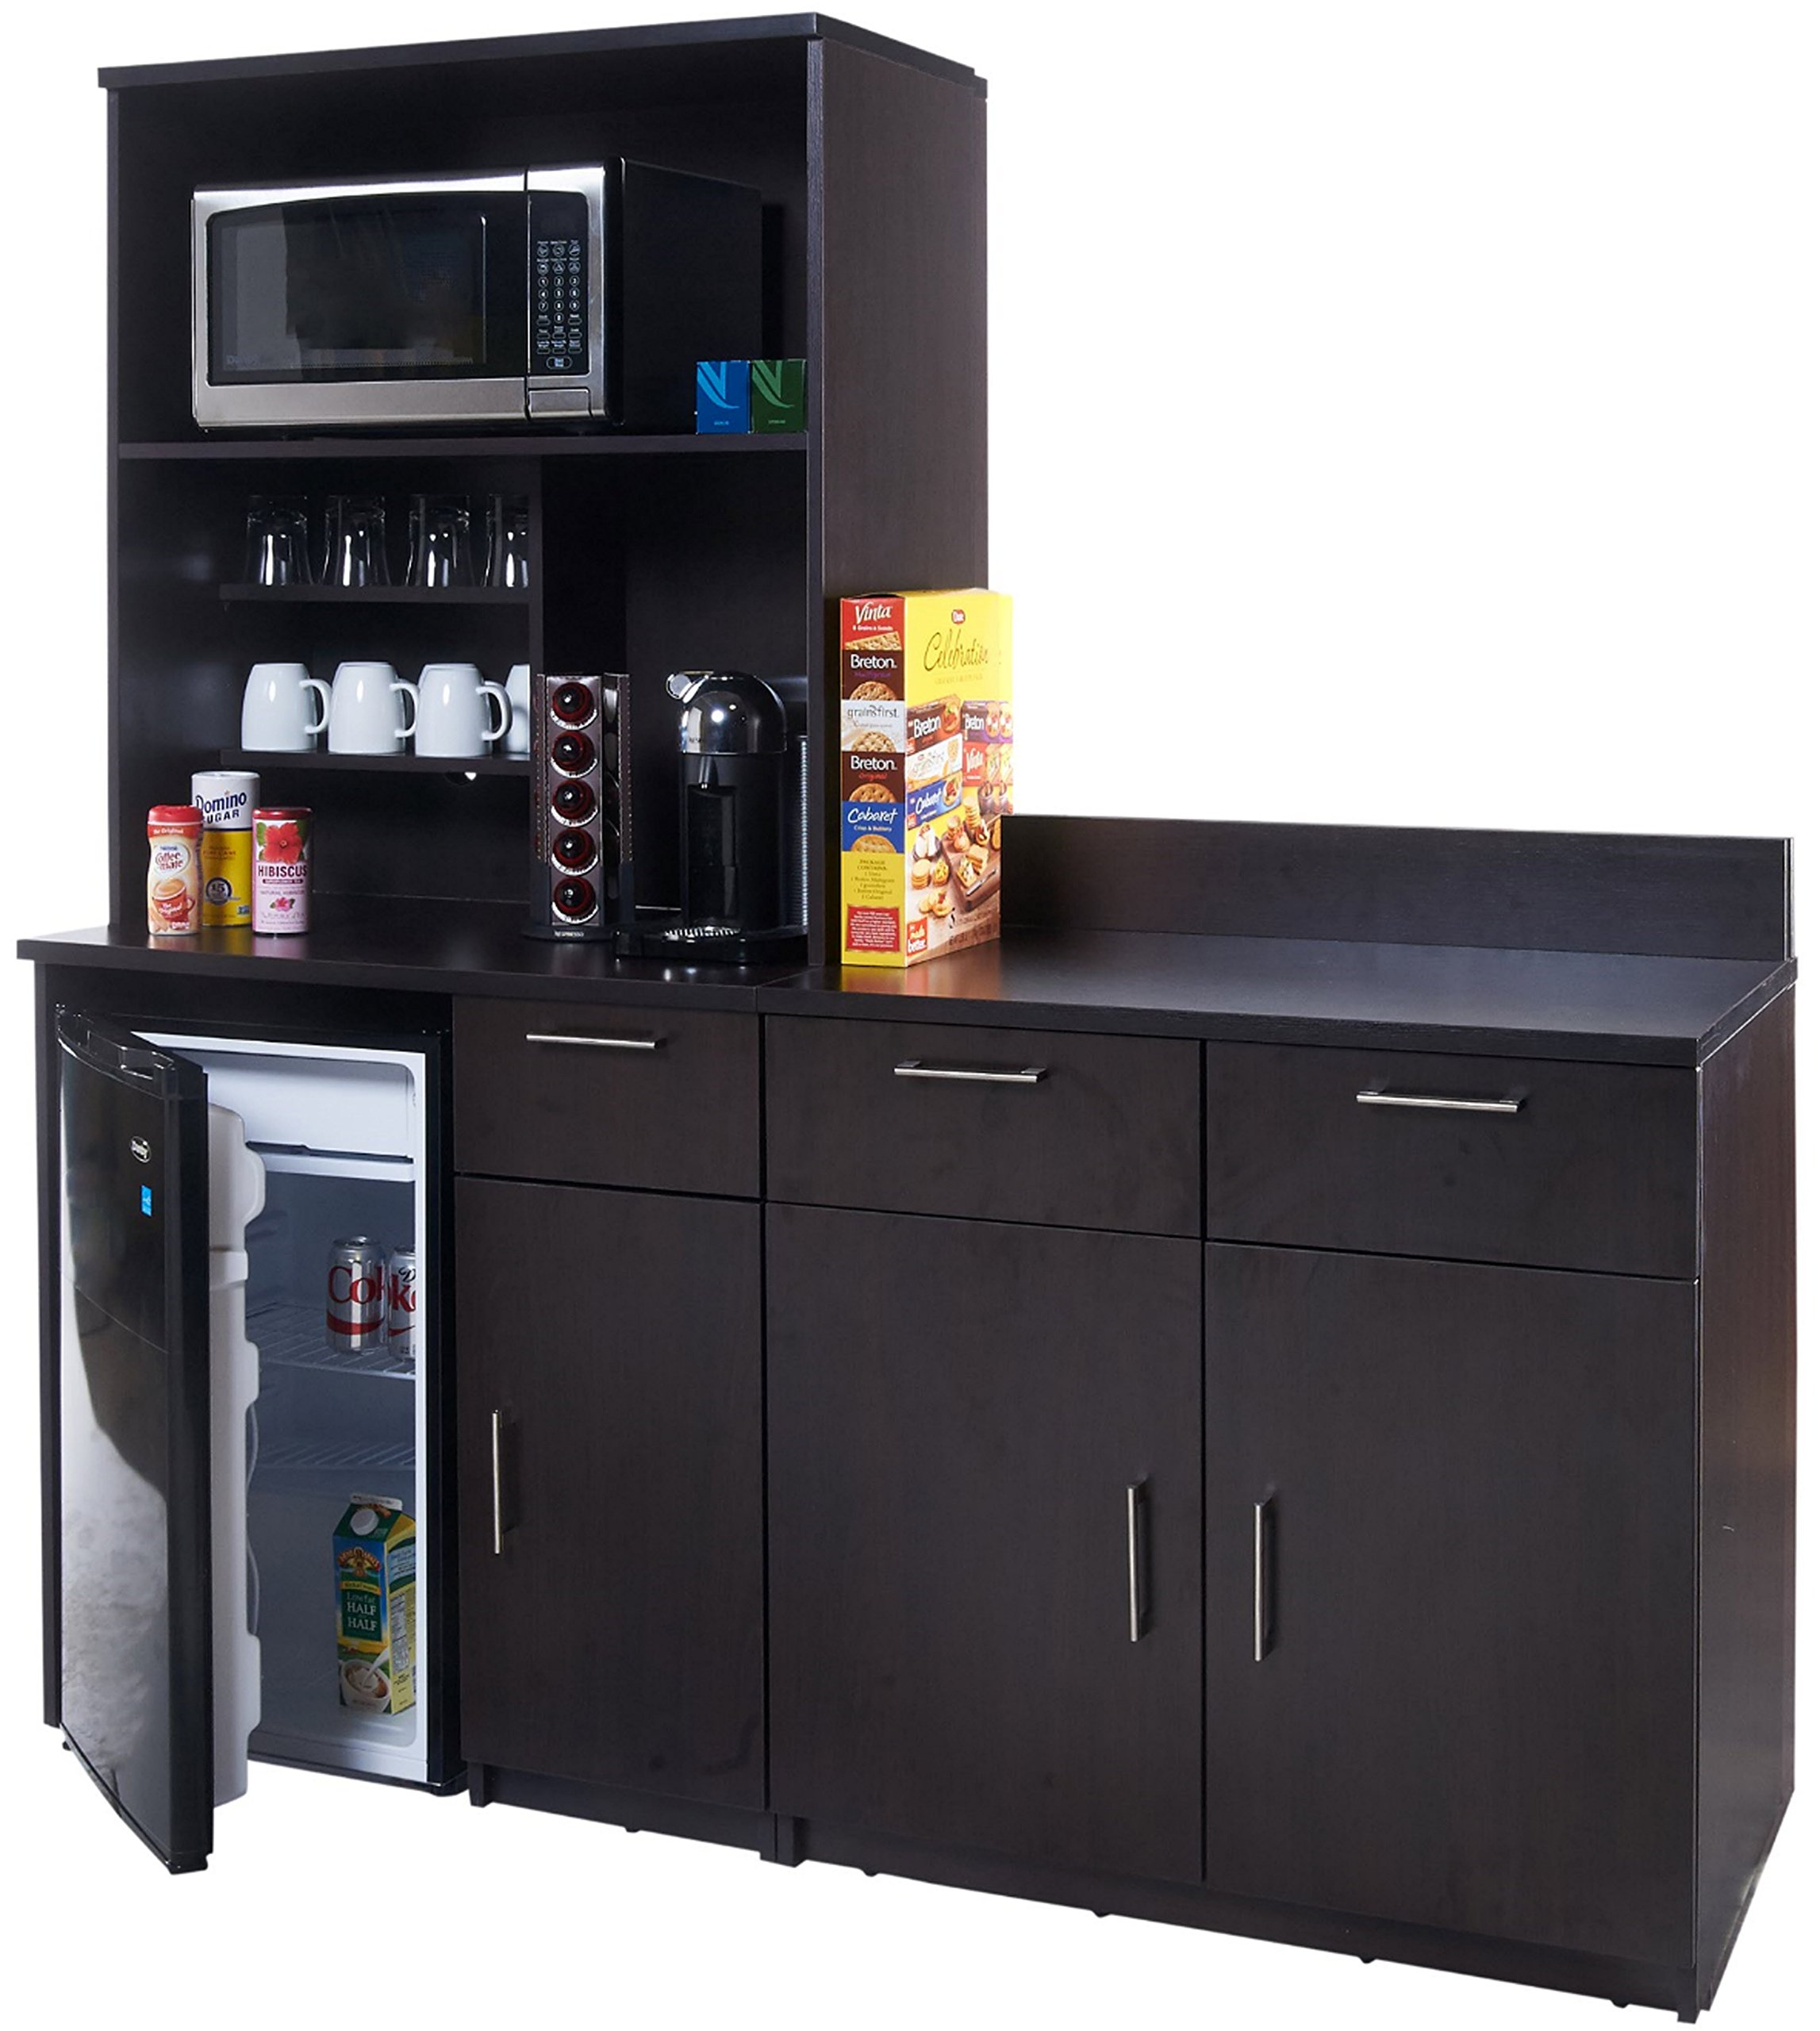 Coffee Kitchen Lunch Break Room Cabinets Model 4256 BREAKTIME 3 piece group Color Espresso - Factory Assembled (NOT RTA) Furniture Items ONLY.